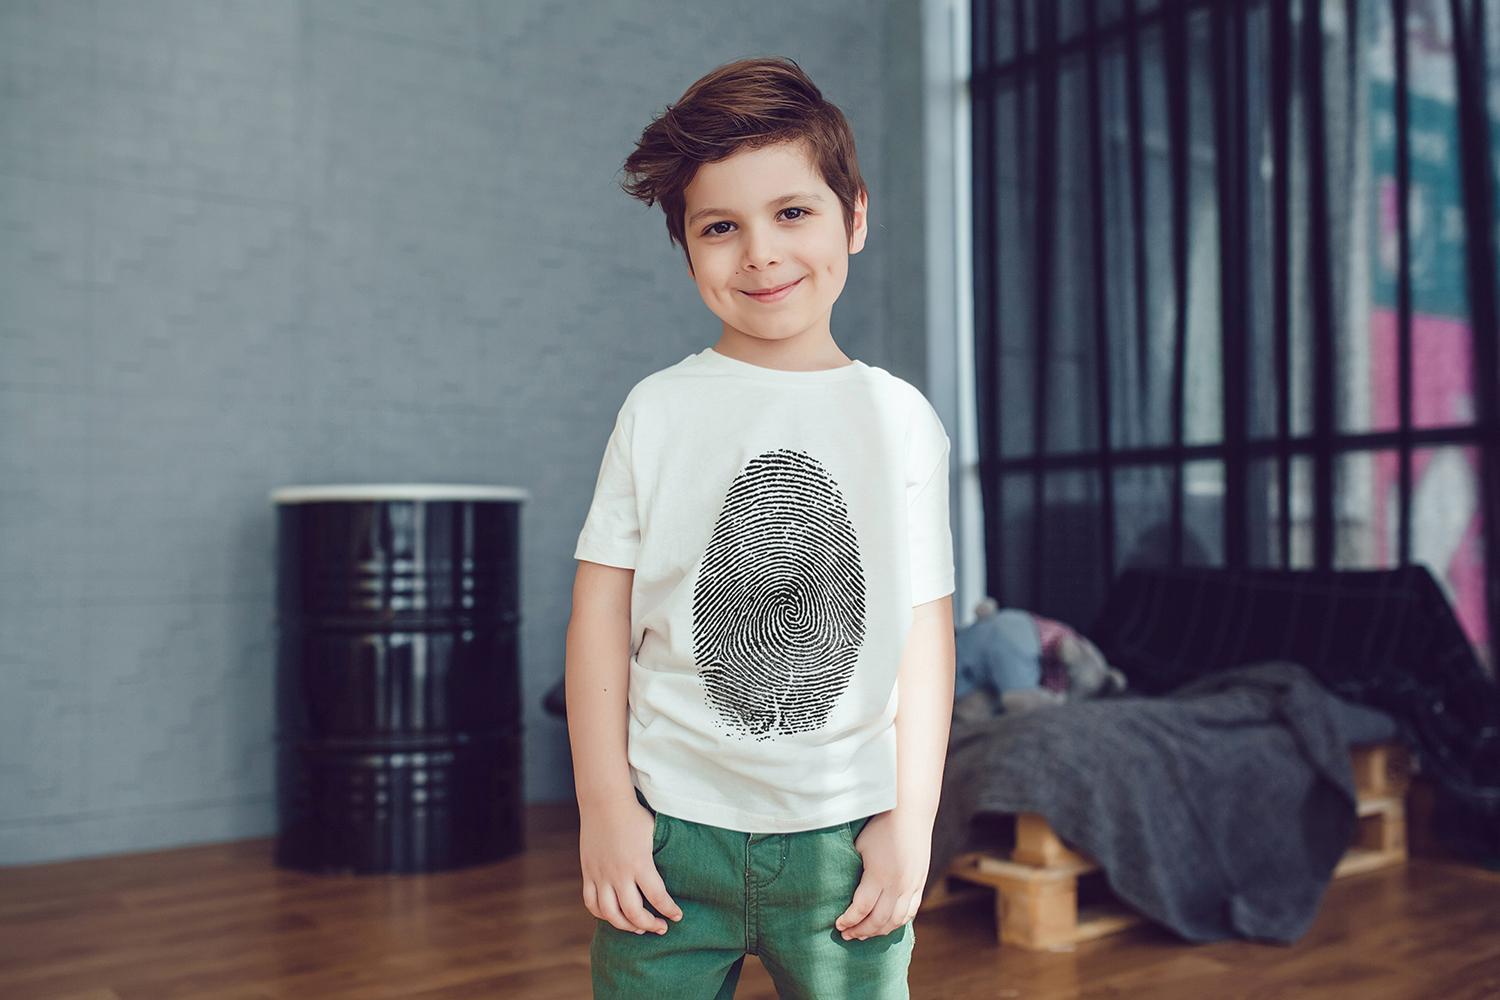 Kids T-Shirt Mock-Up Vol.2 2017 example image 8